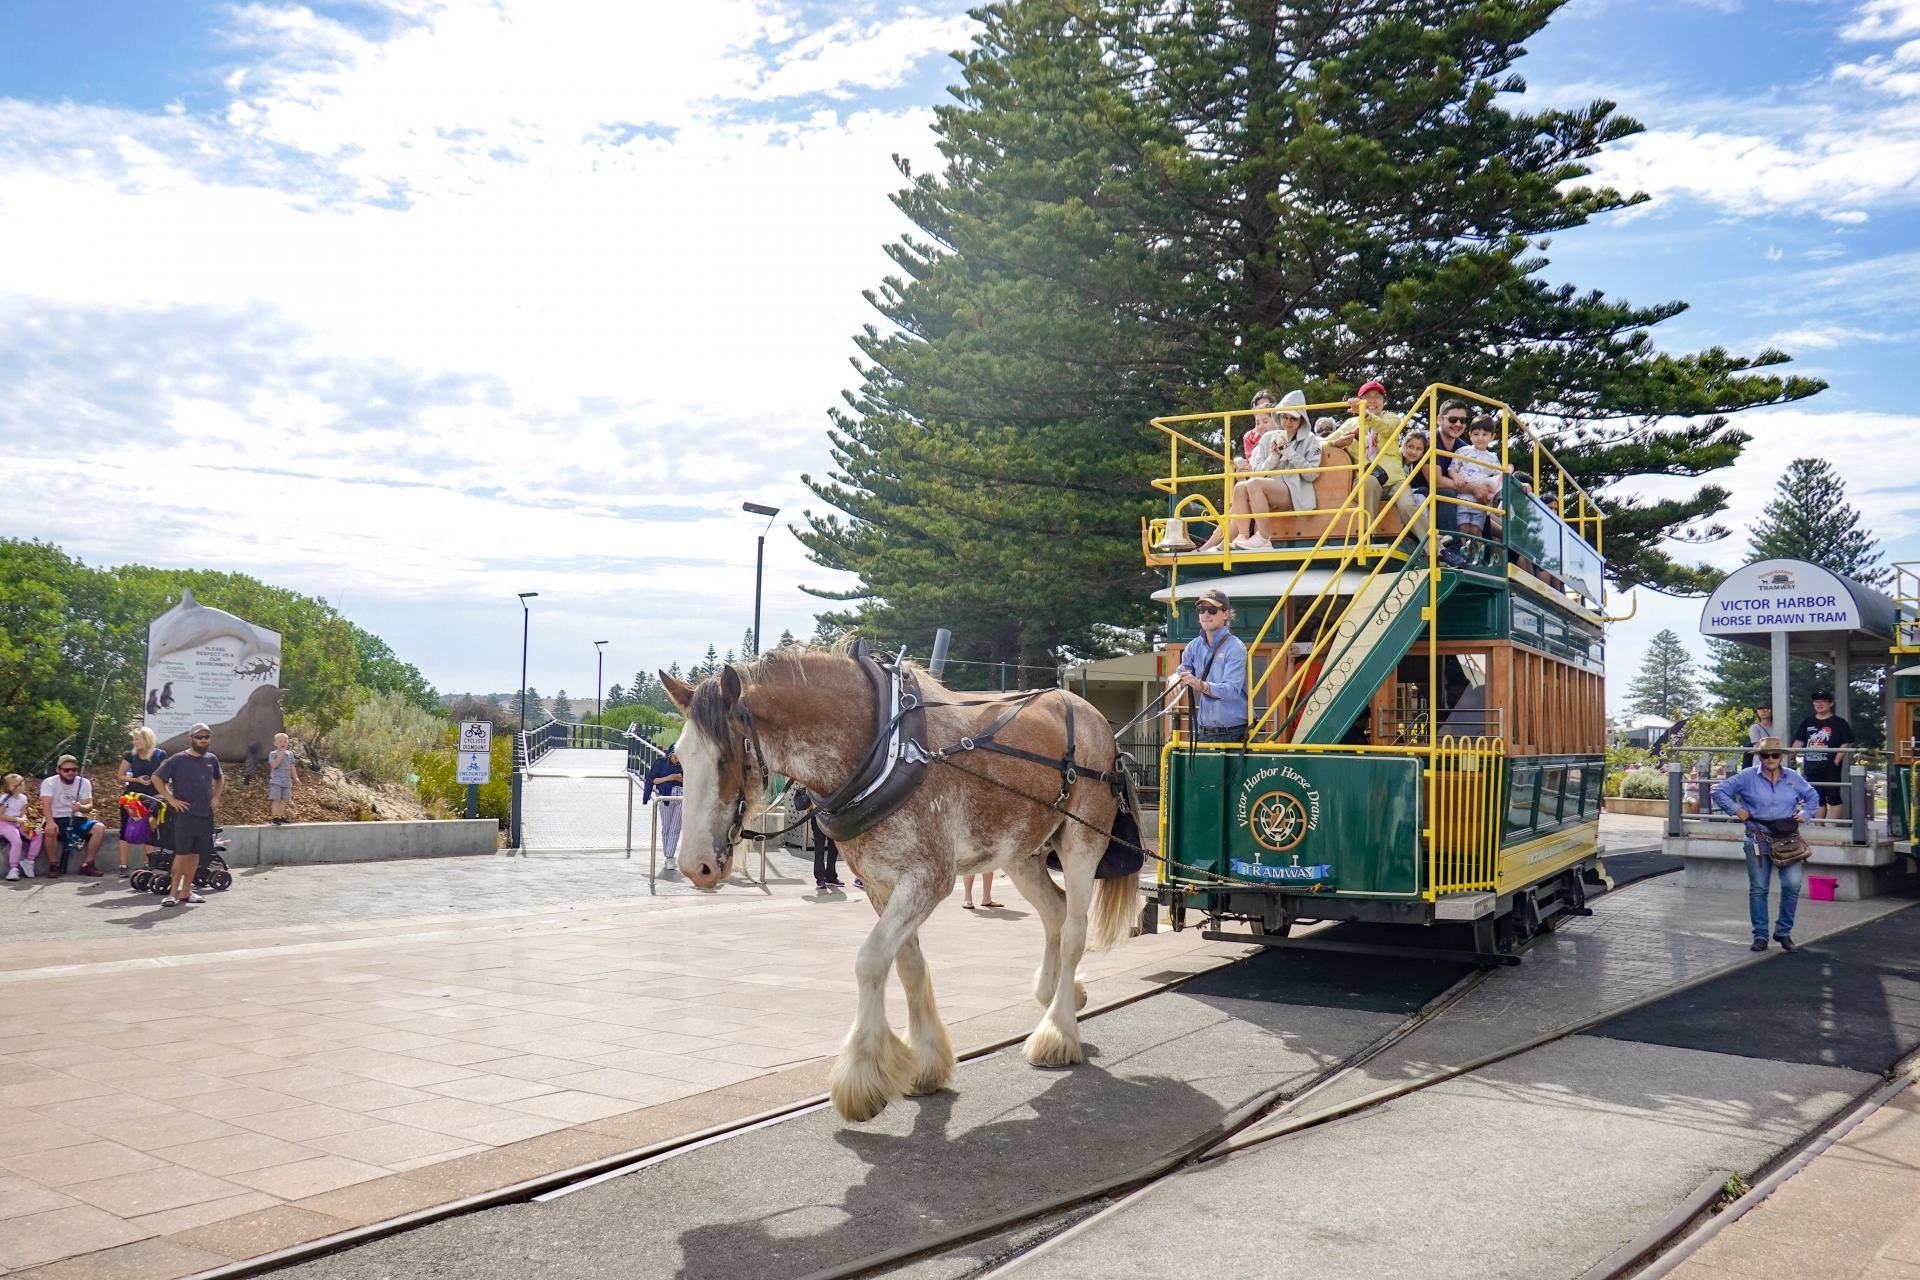 victor harbour horse and cart